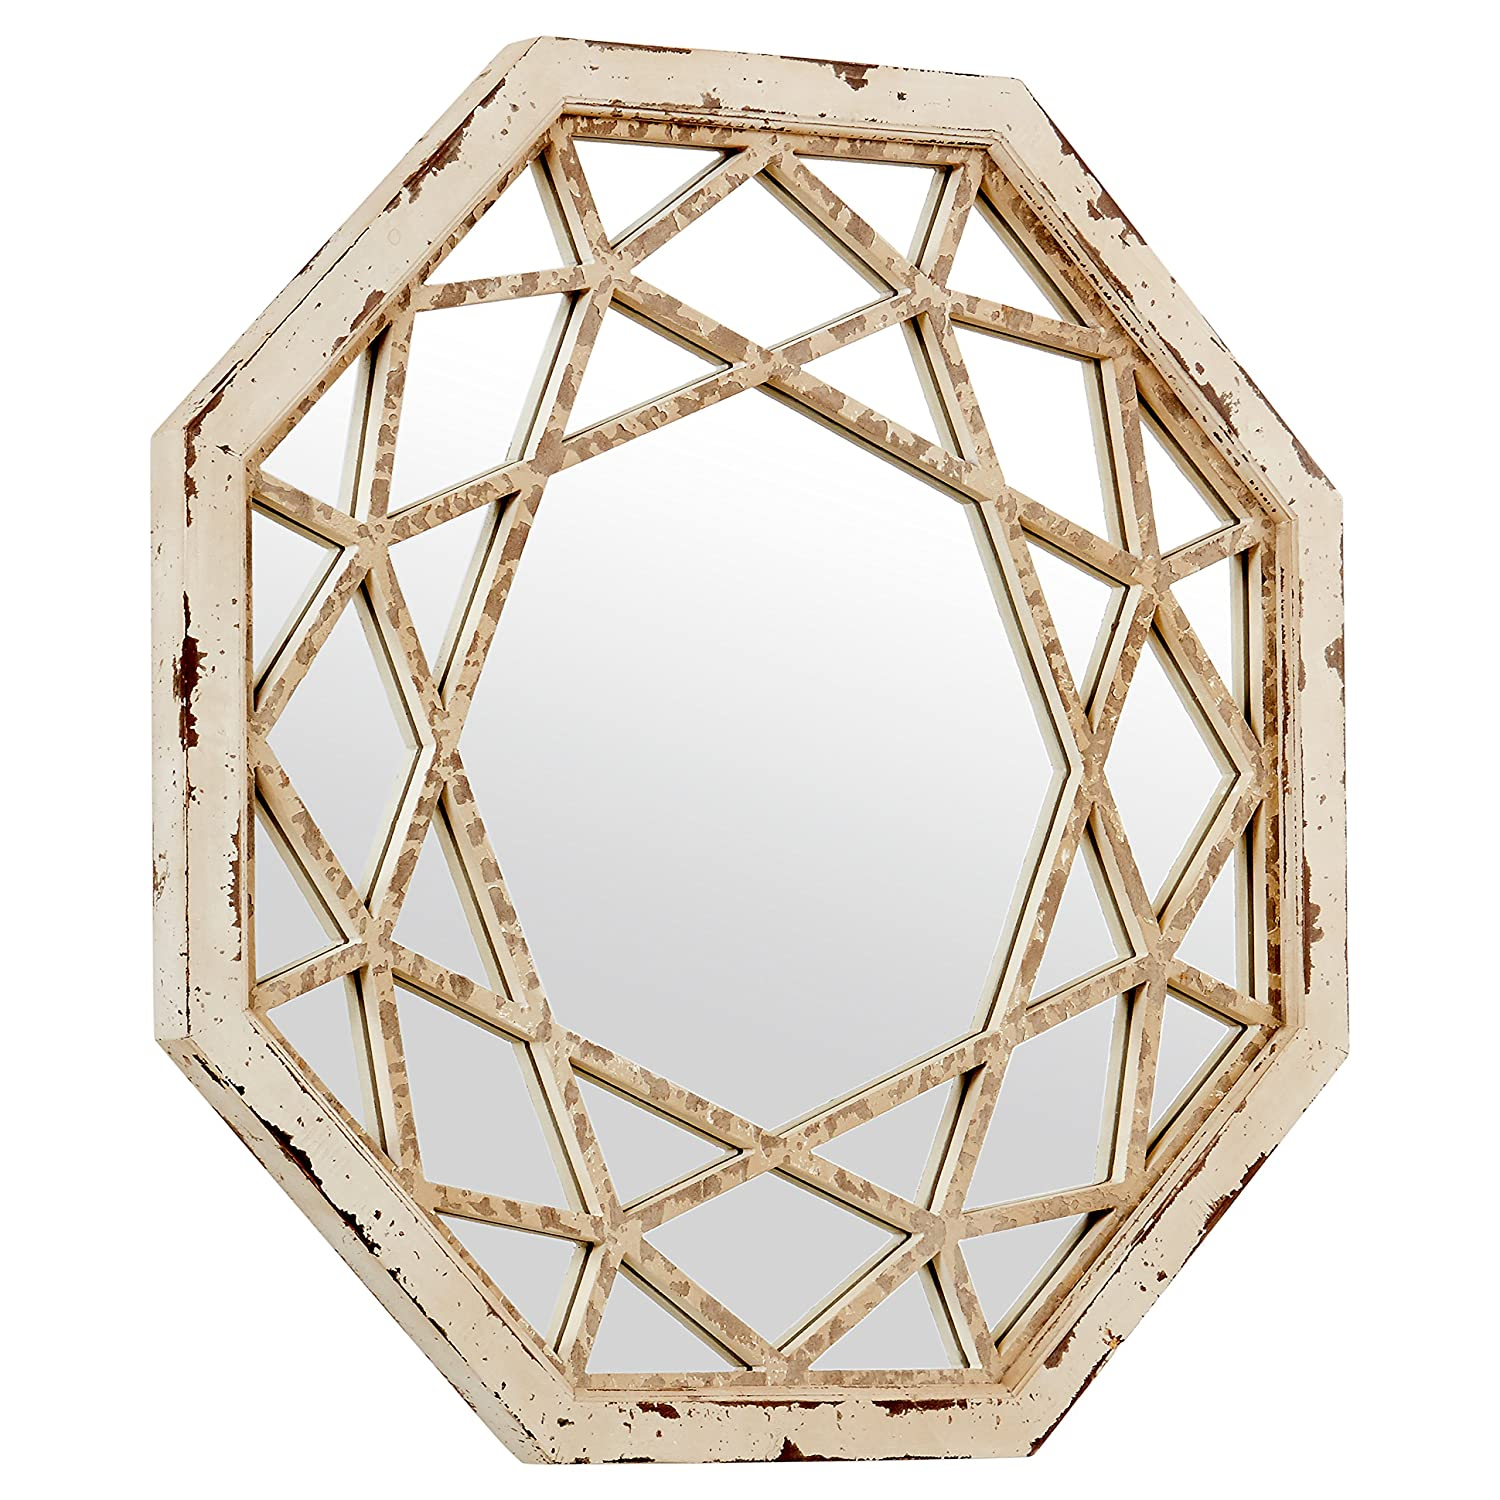 Stone Beam Vintage-Look Octagonal Hanging Wall Mirror Decor, 25.5 Inch Height, Antique White